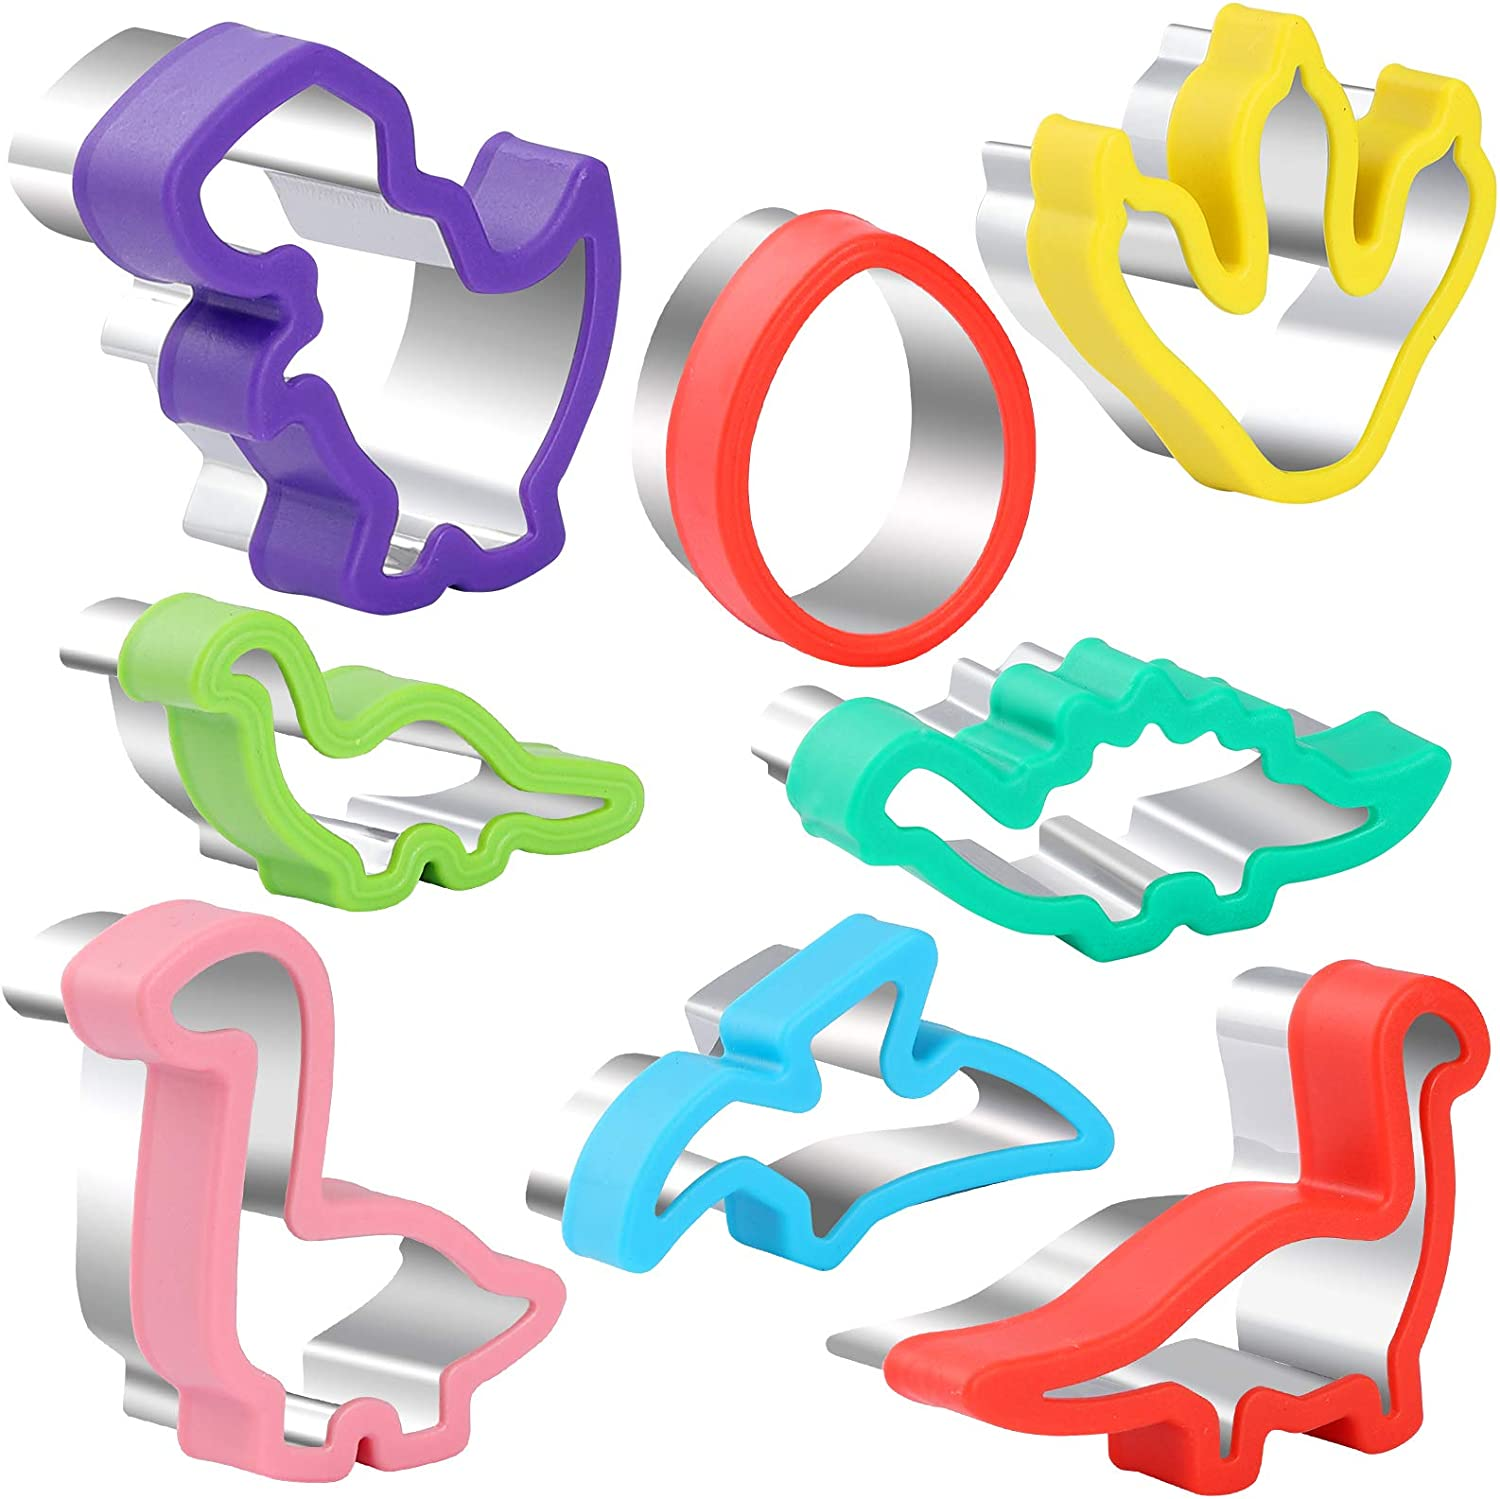 8pcs Dinosaur Cookie cutters set, Stainless Steel Sandwich Cutters Cookie Cutters Vegetable cutters for Kids Baking, Bento Box and Food Decoration Tools for Kitchen